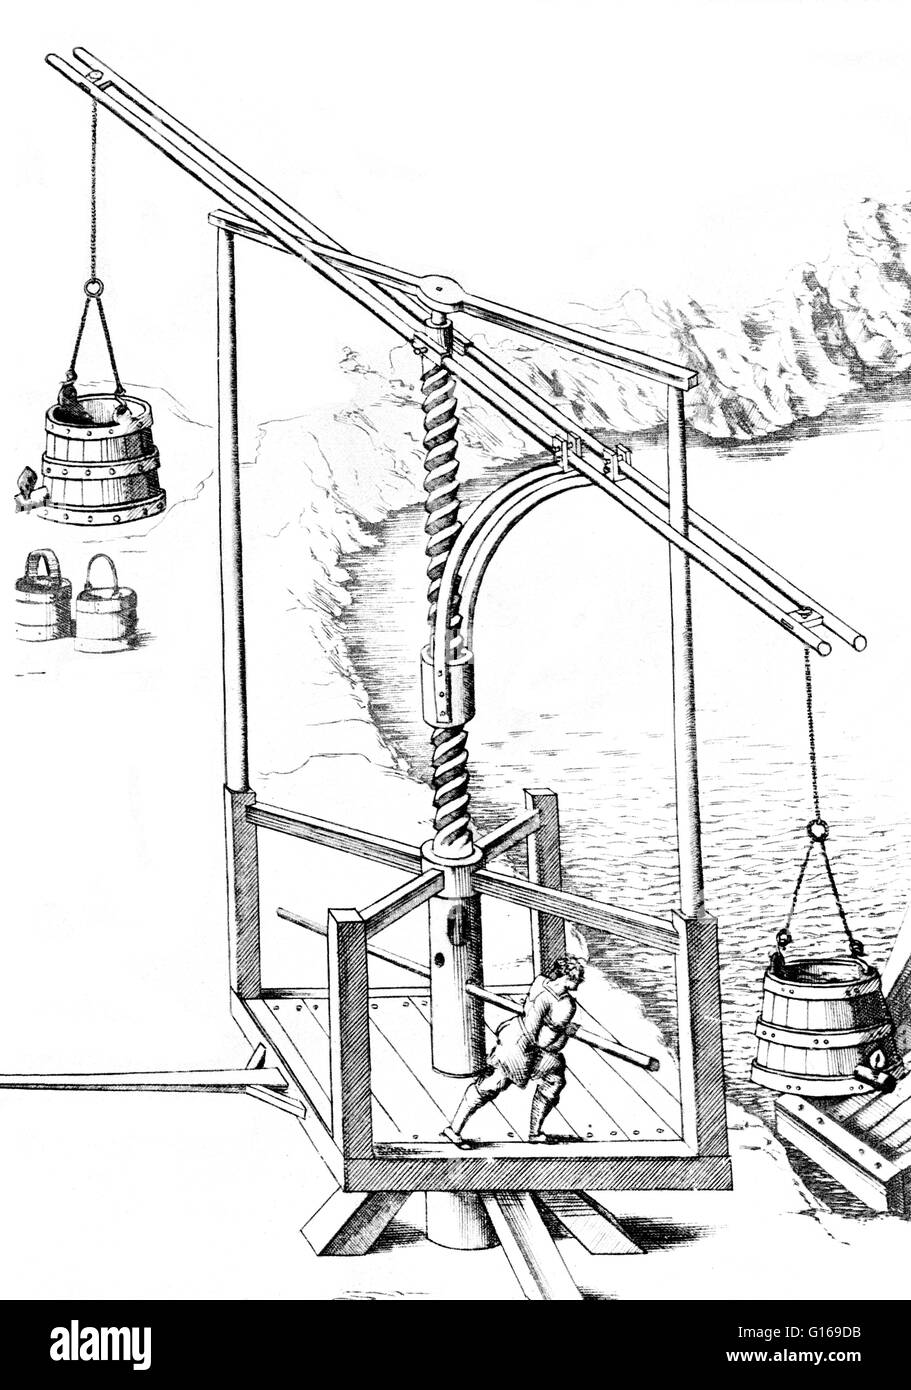 Illustration of a machine to raise water, 16th century. A lever is a machine consisting of a beam or rigid rod pivoted - Stock Image